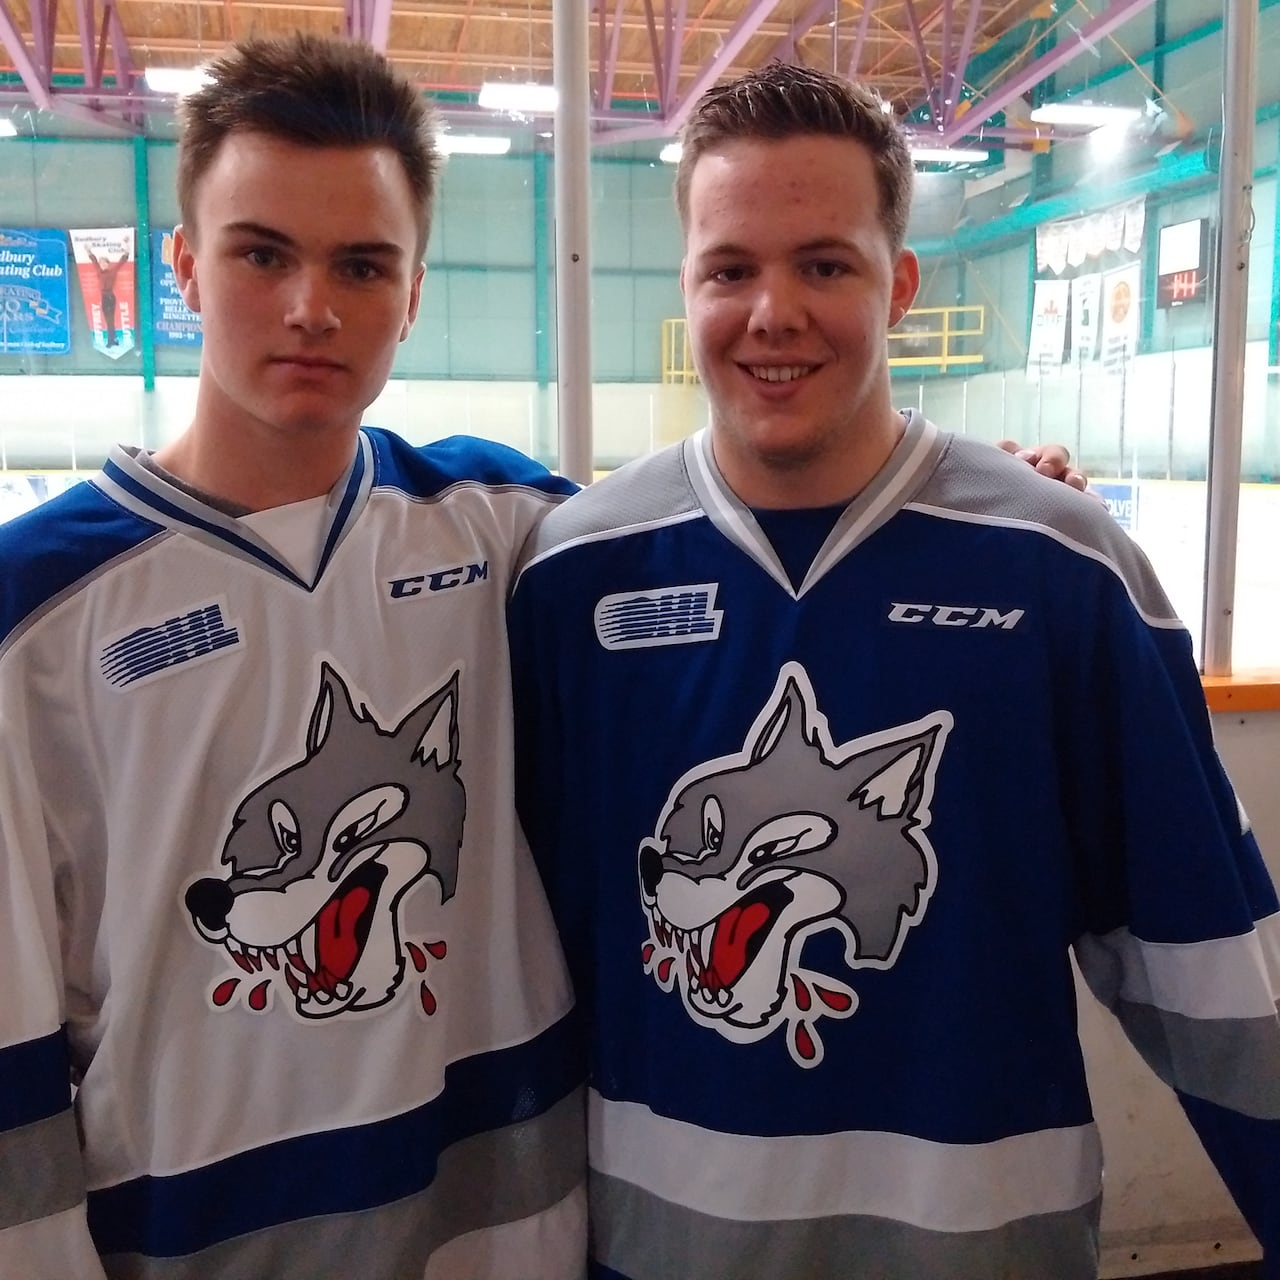 b1066528508 New Sudbury Wolves jerseys 'an echo' of the past | CBC News